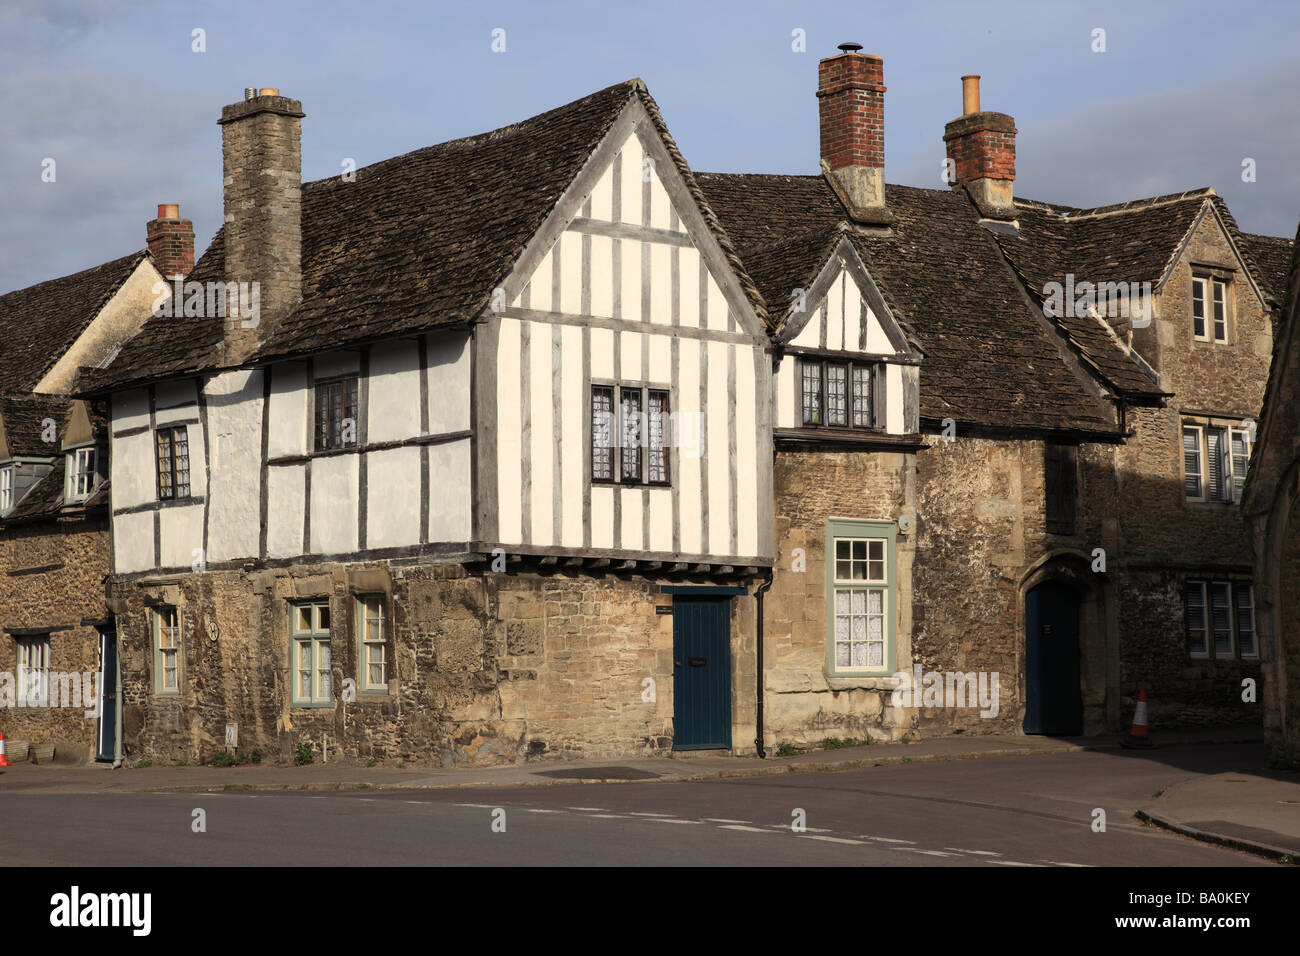 High Street, Lacock, Wiltshire, England - Stock Image